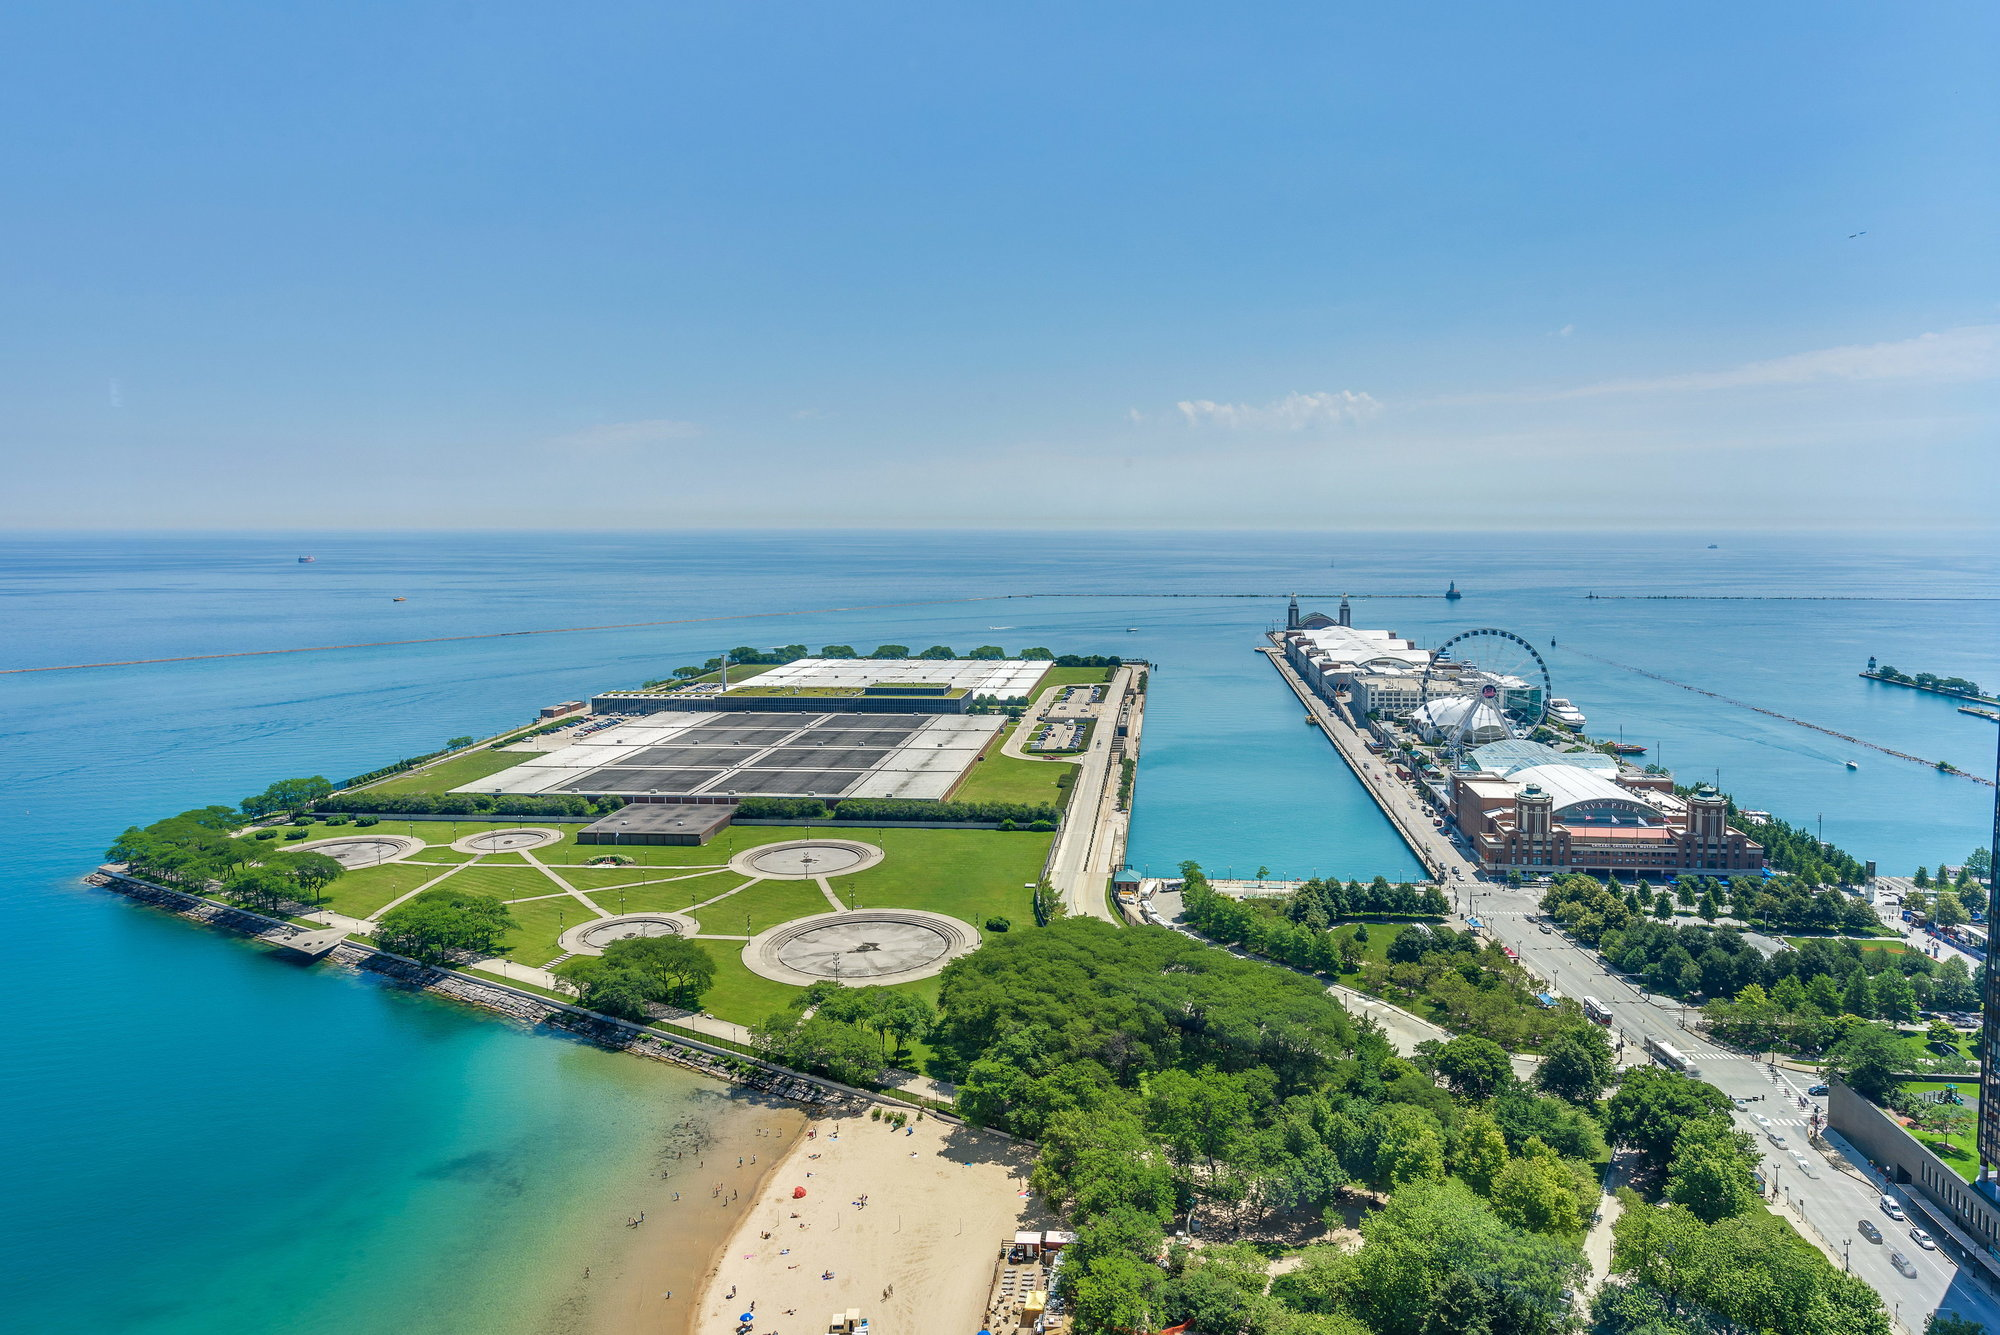 600 N Lake Shore Drive Luxury Condos